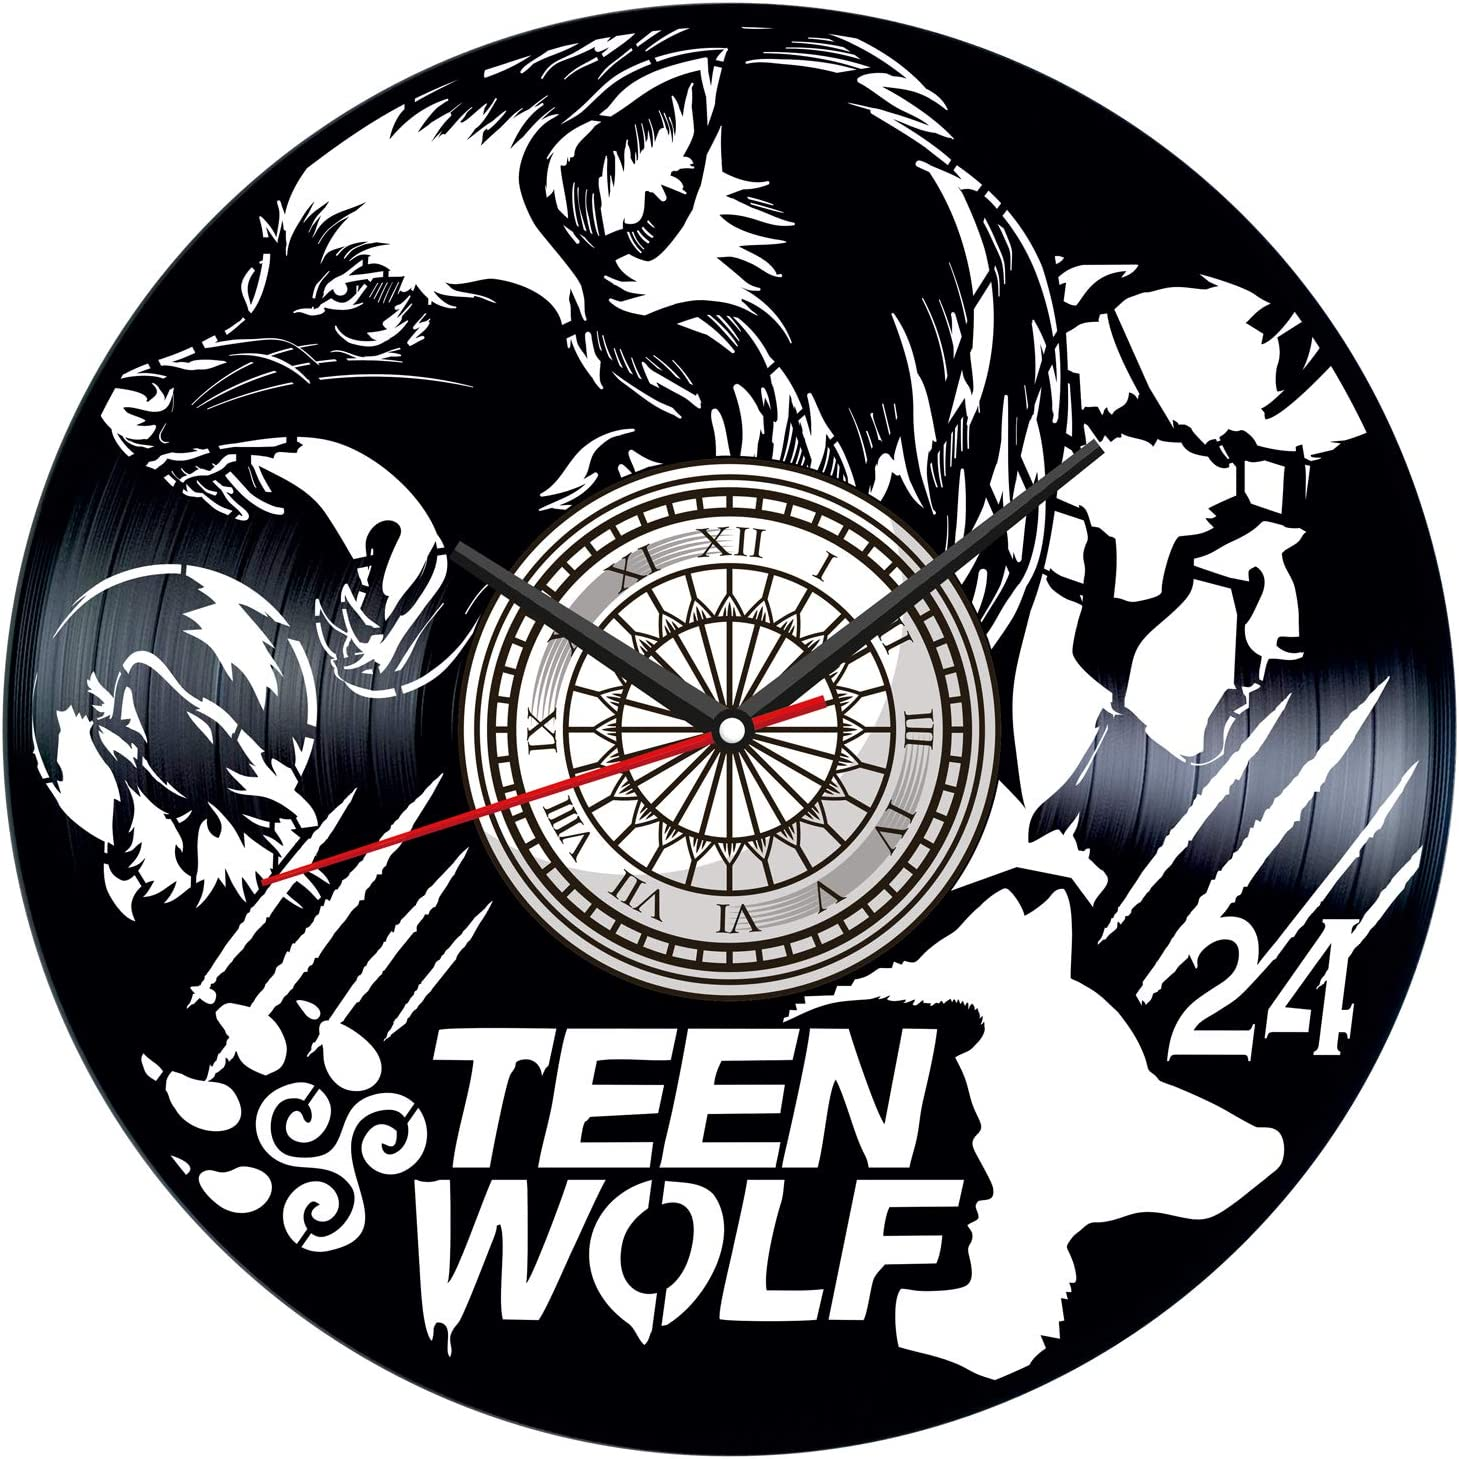 Teen Wolf Vinyl Record Wall Clock Poster - Vintage Home Decor Kitchen Bedroom Living Room Office - Unique Handmade Gift for Men Woman Friends Boys - 12 inches